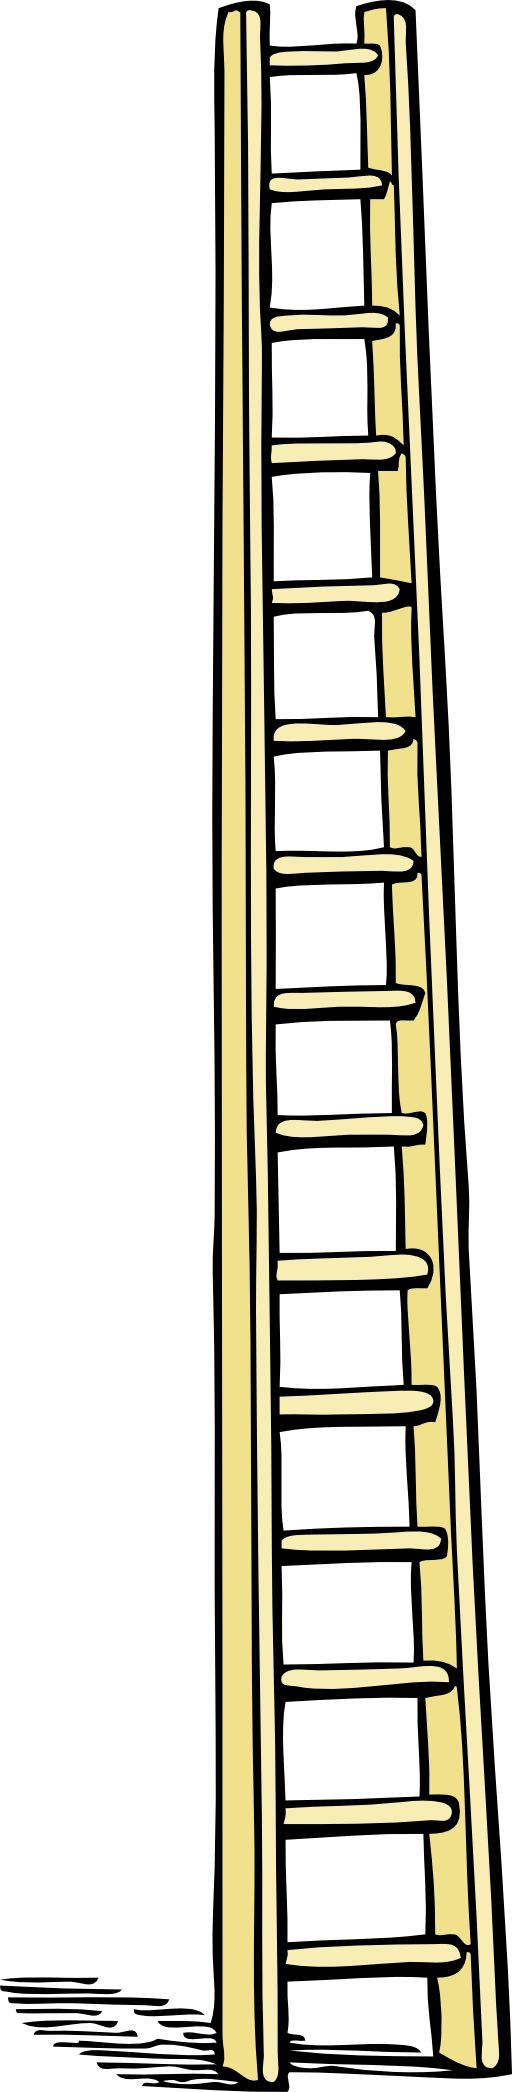 Free Jacob\'s Ladder Cliparts, Download Free Clip Art, Free.